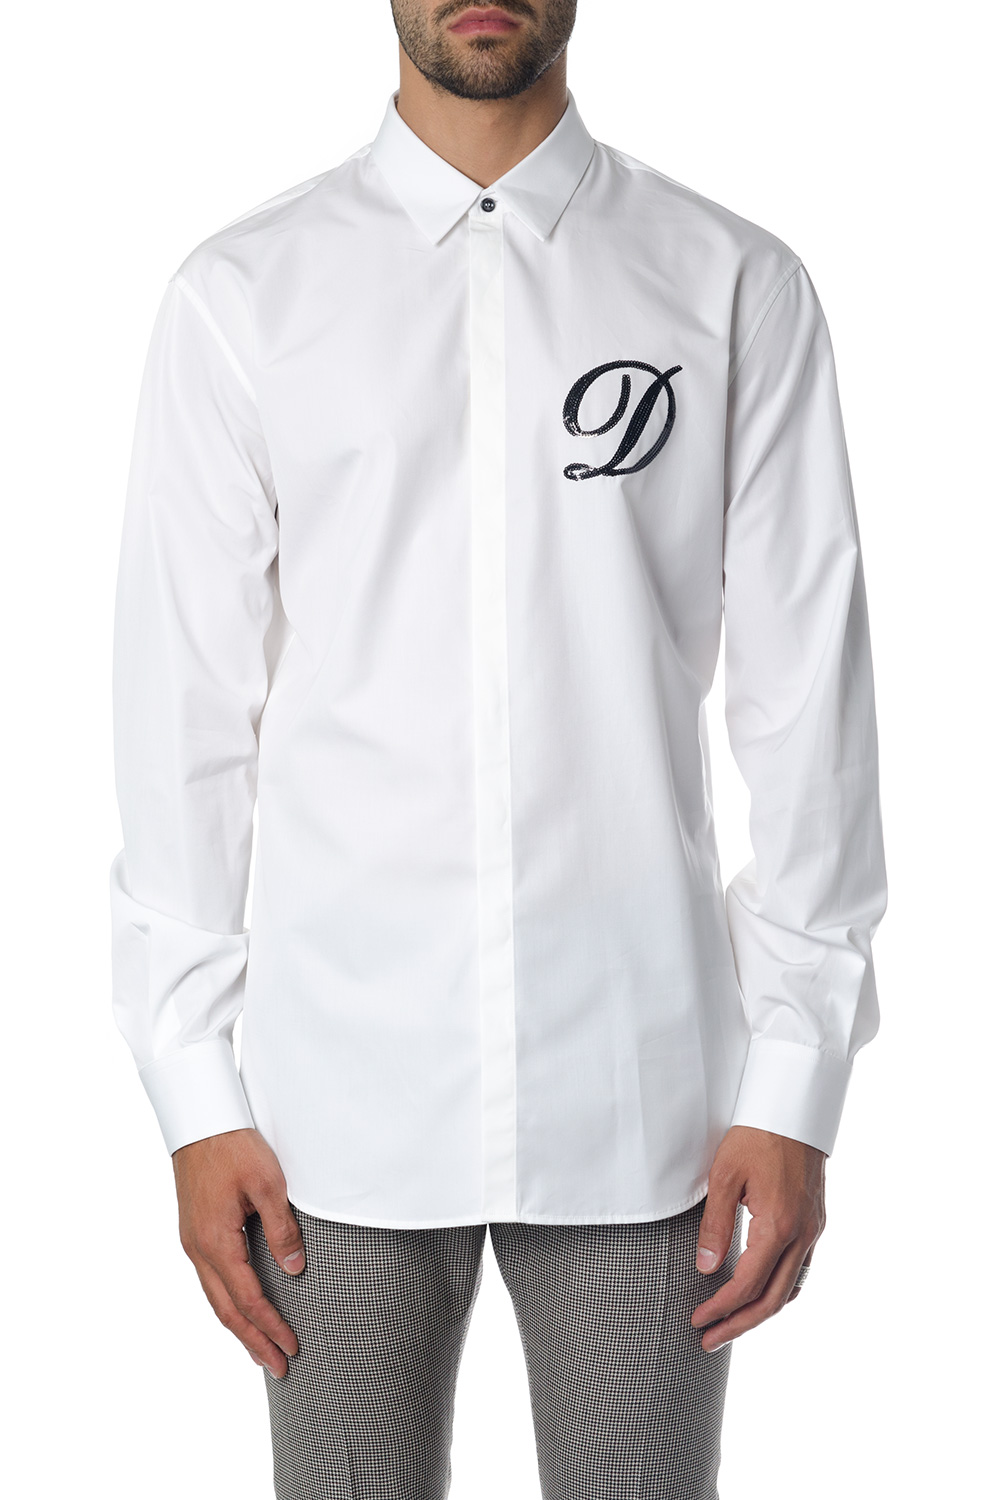 bcf8cde20a5 WHITE COTTON SHIRT WITH LOGO FW 2018 - DSQUARED2 - Boutique Galiano